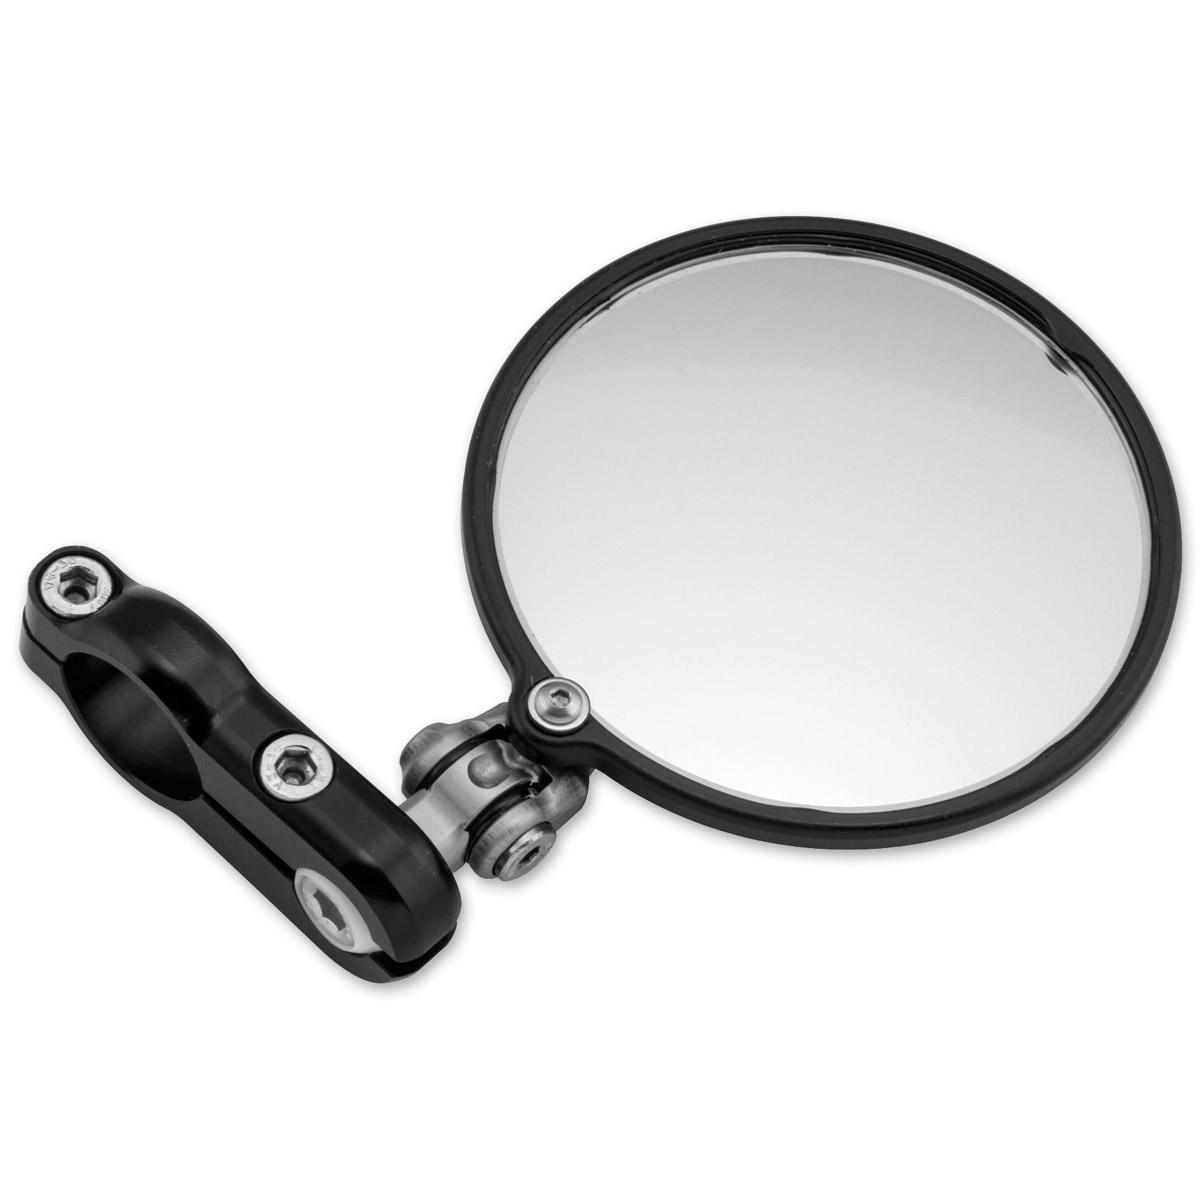 CRG Hindsight LS Bar End Mirror